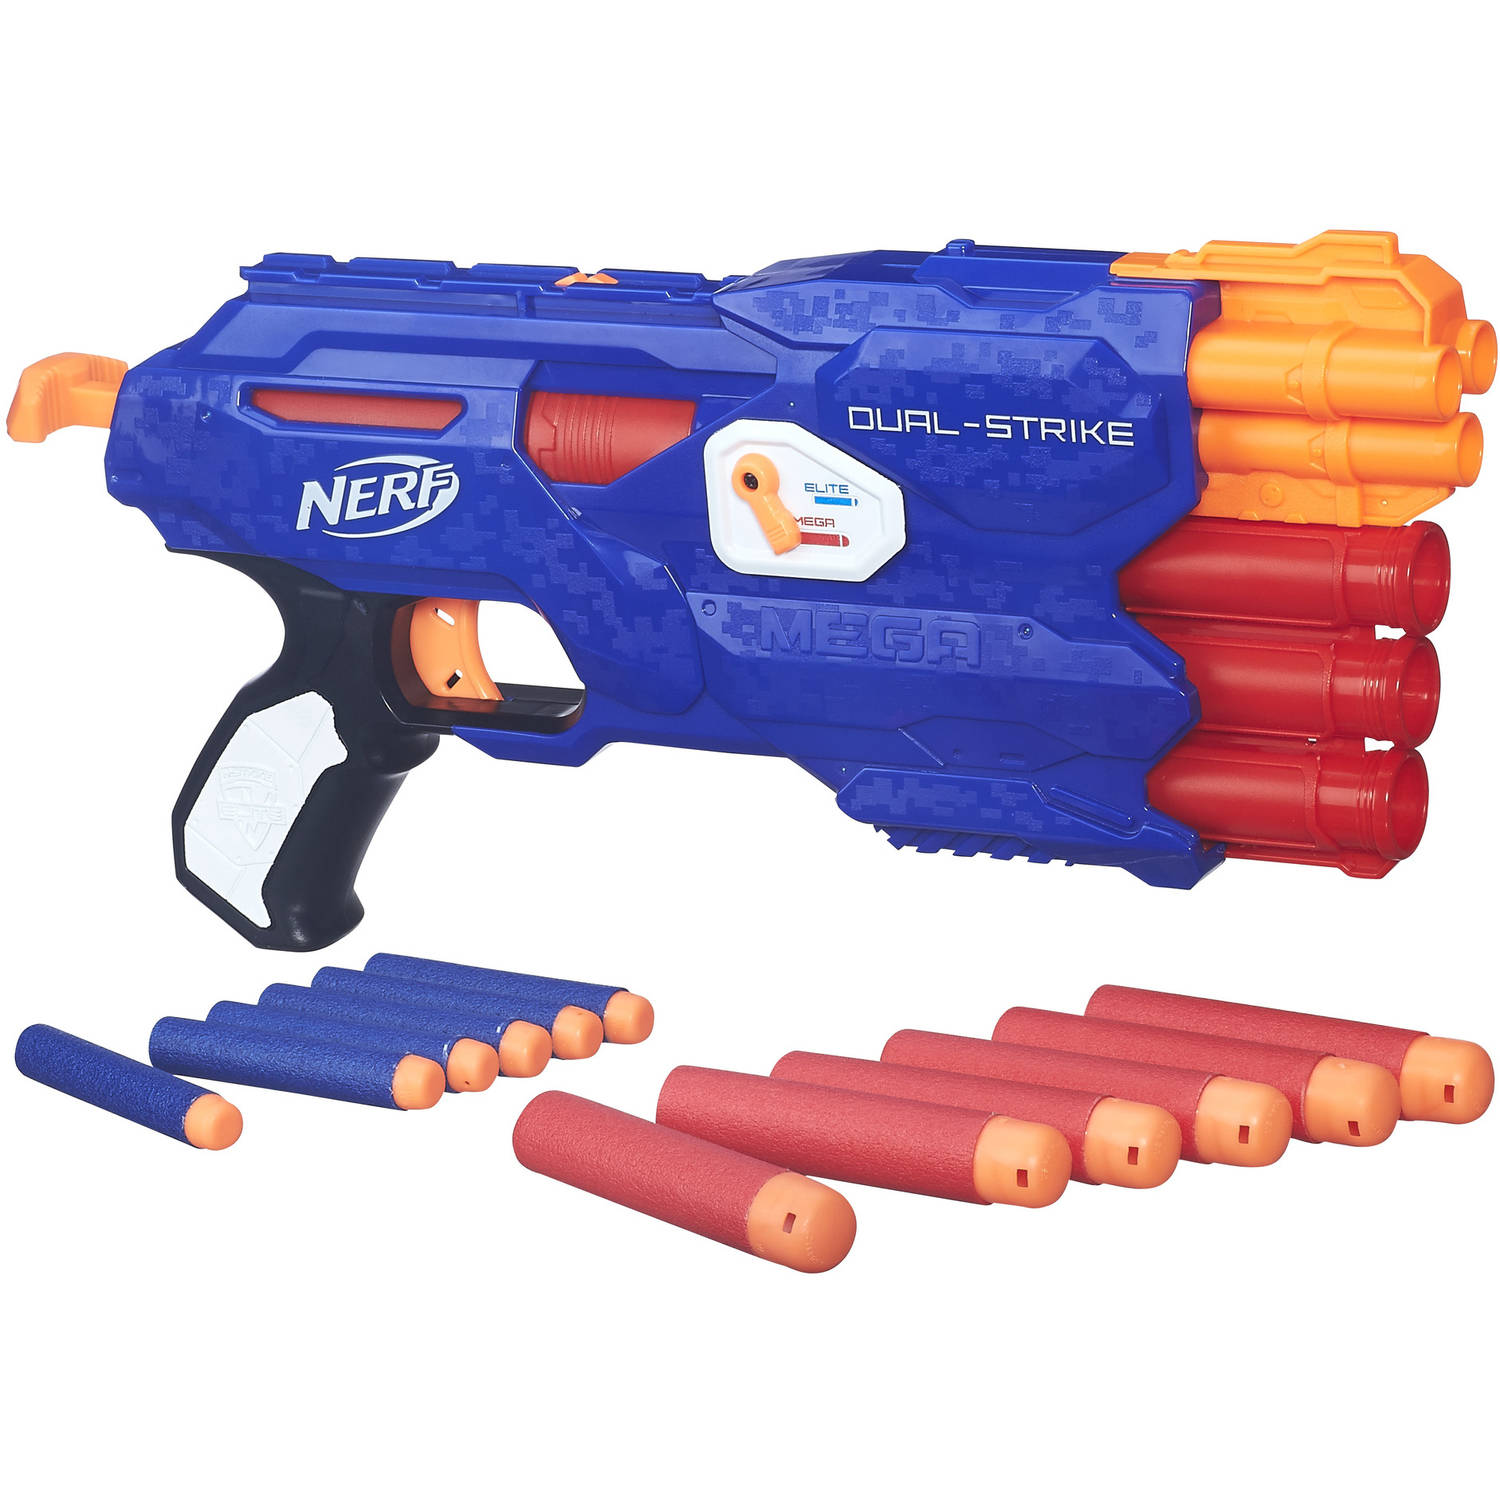 Nerf N-Strike Elite DualStrike Blaster Value Pack